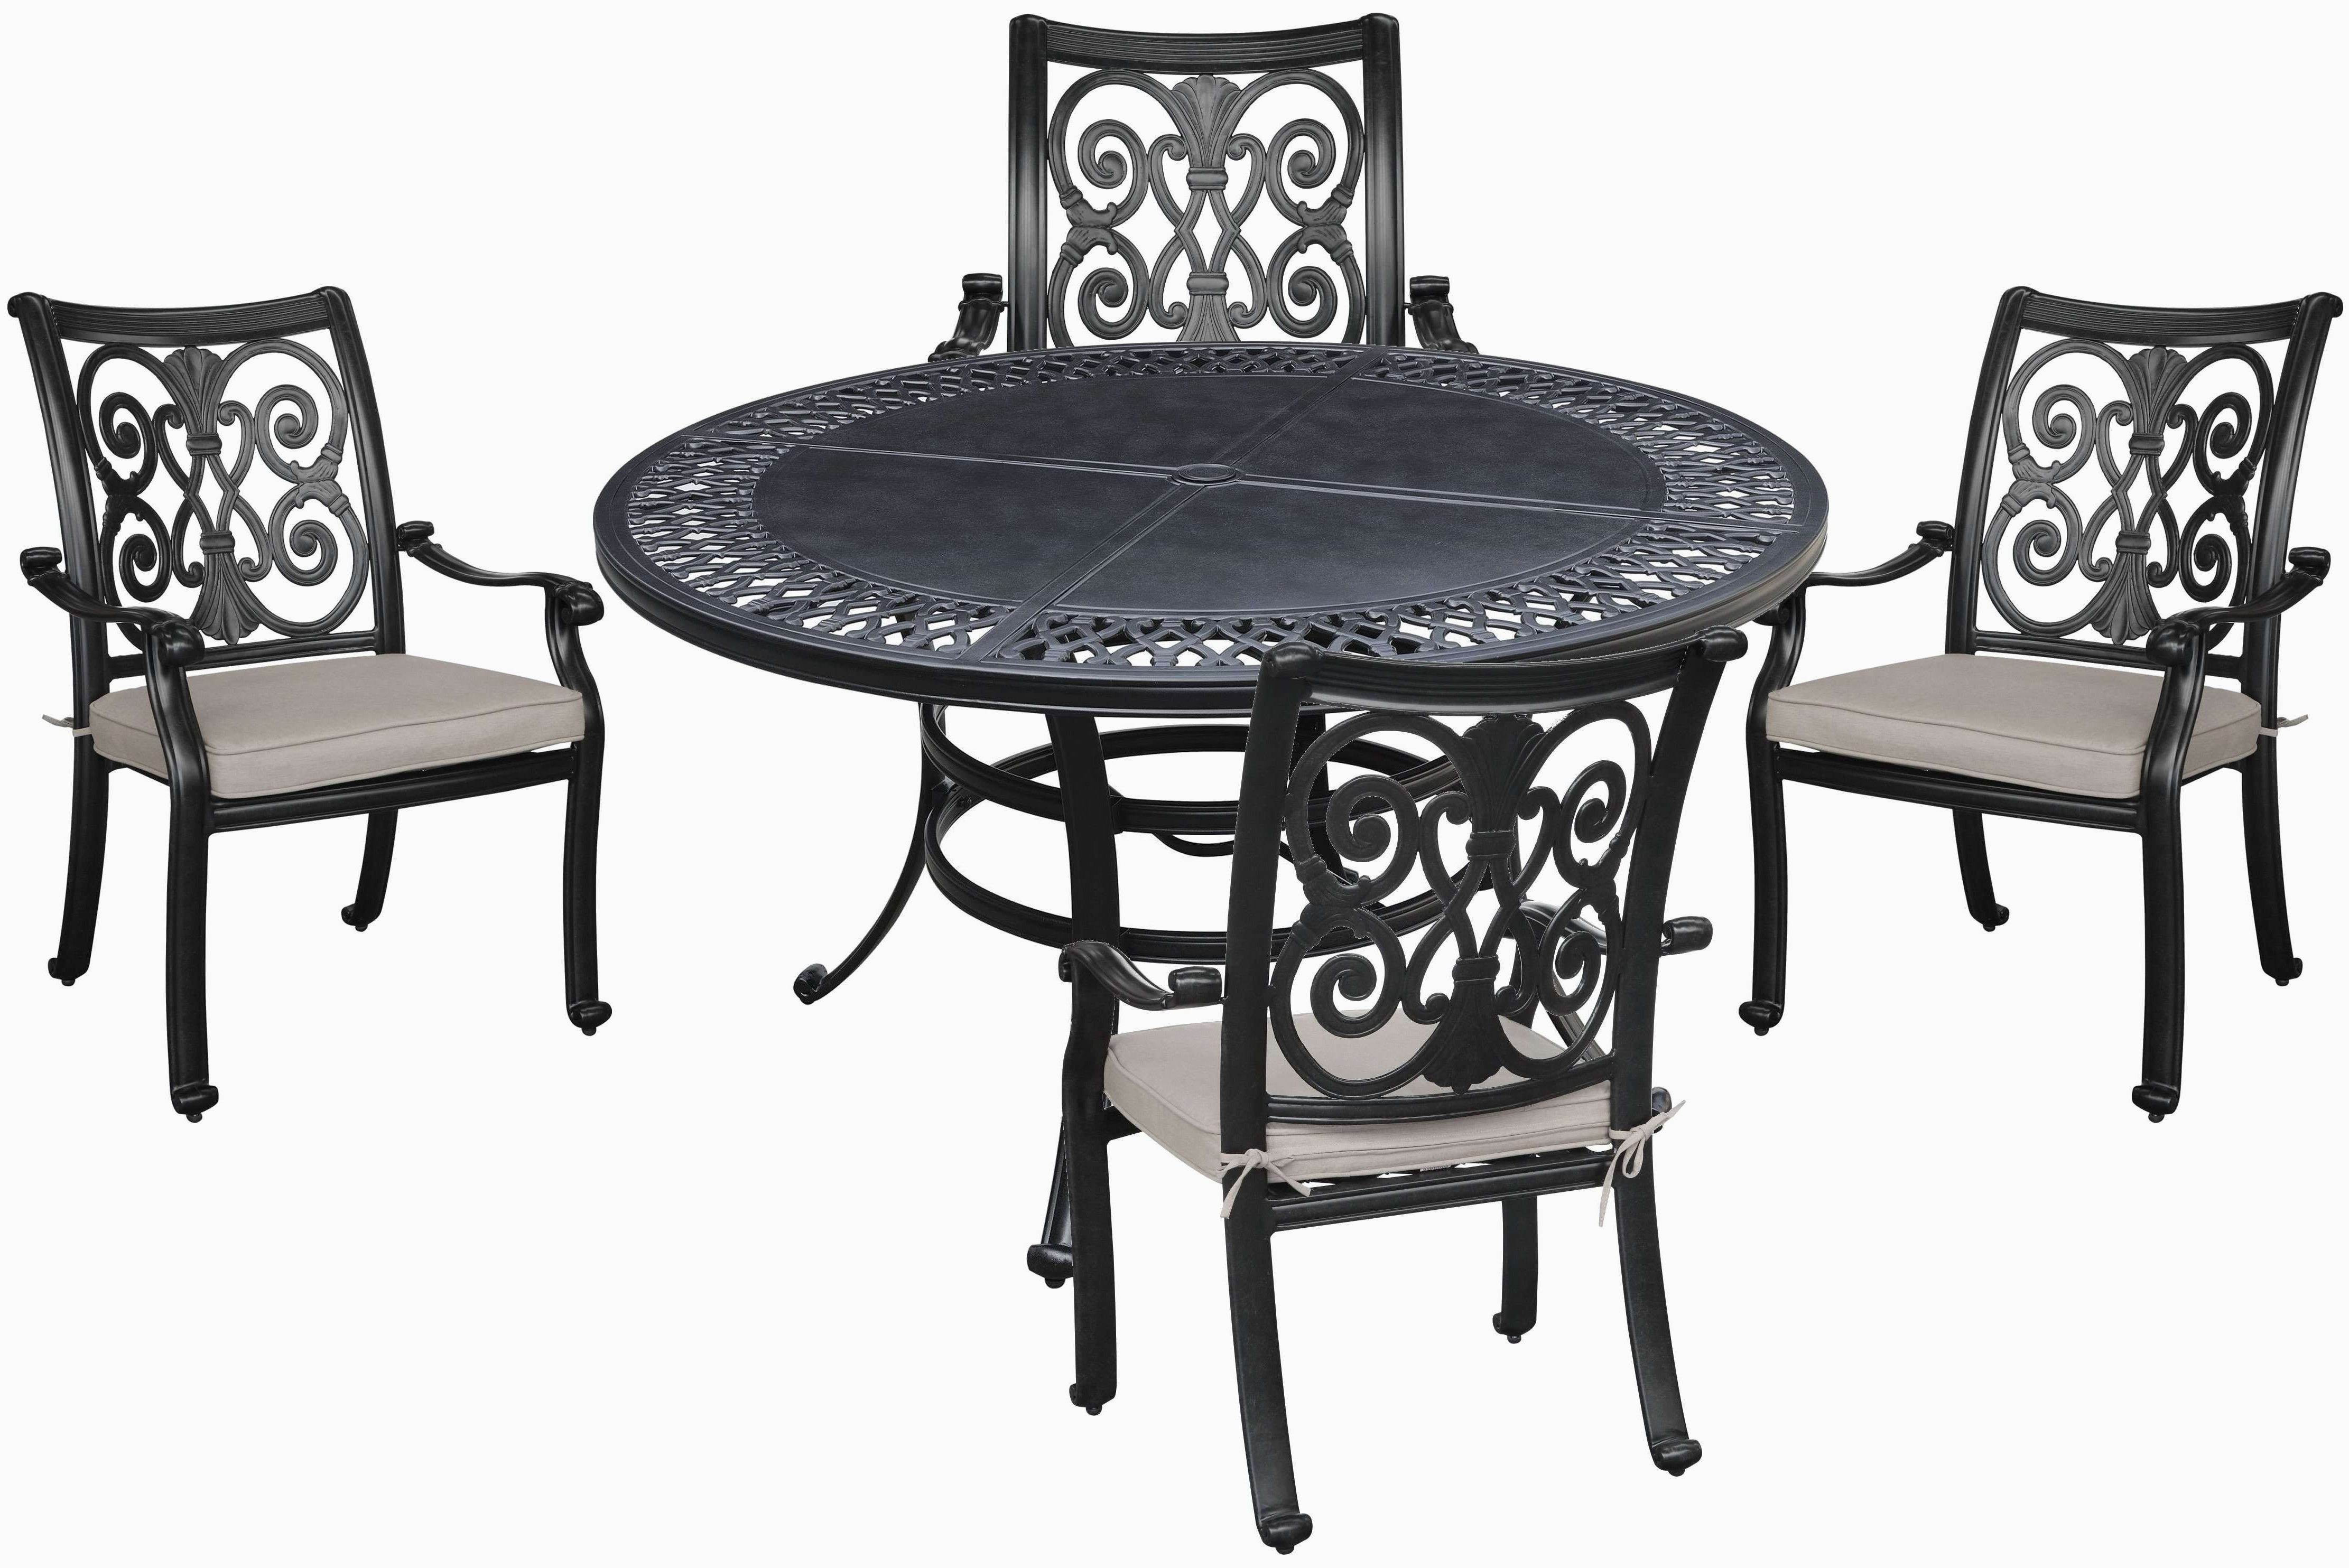 Fashionable Small Dining Tables For 2 For Tiny Dining Tables Inspirational 29 Pleasing Small Dining Room Table (View 5 of 25)